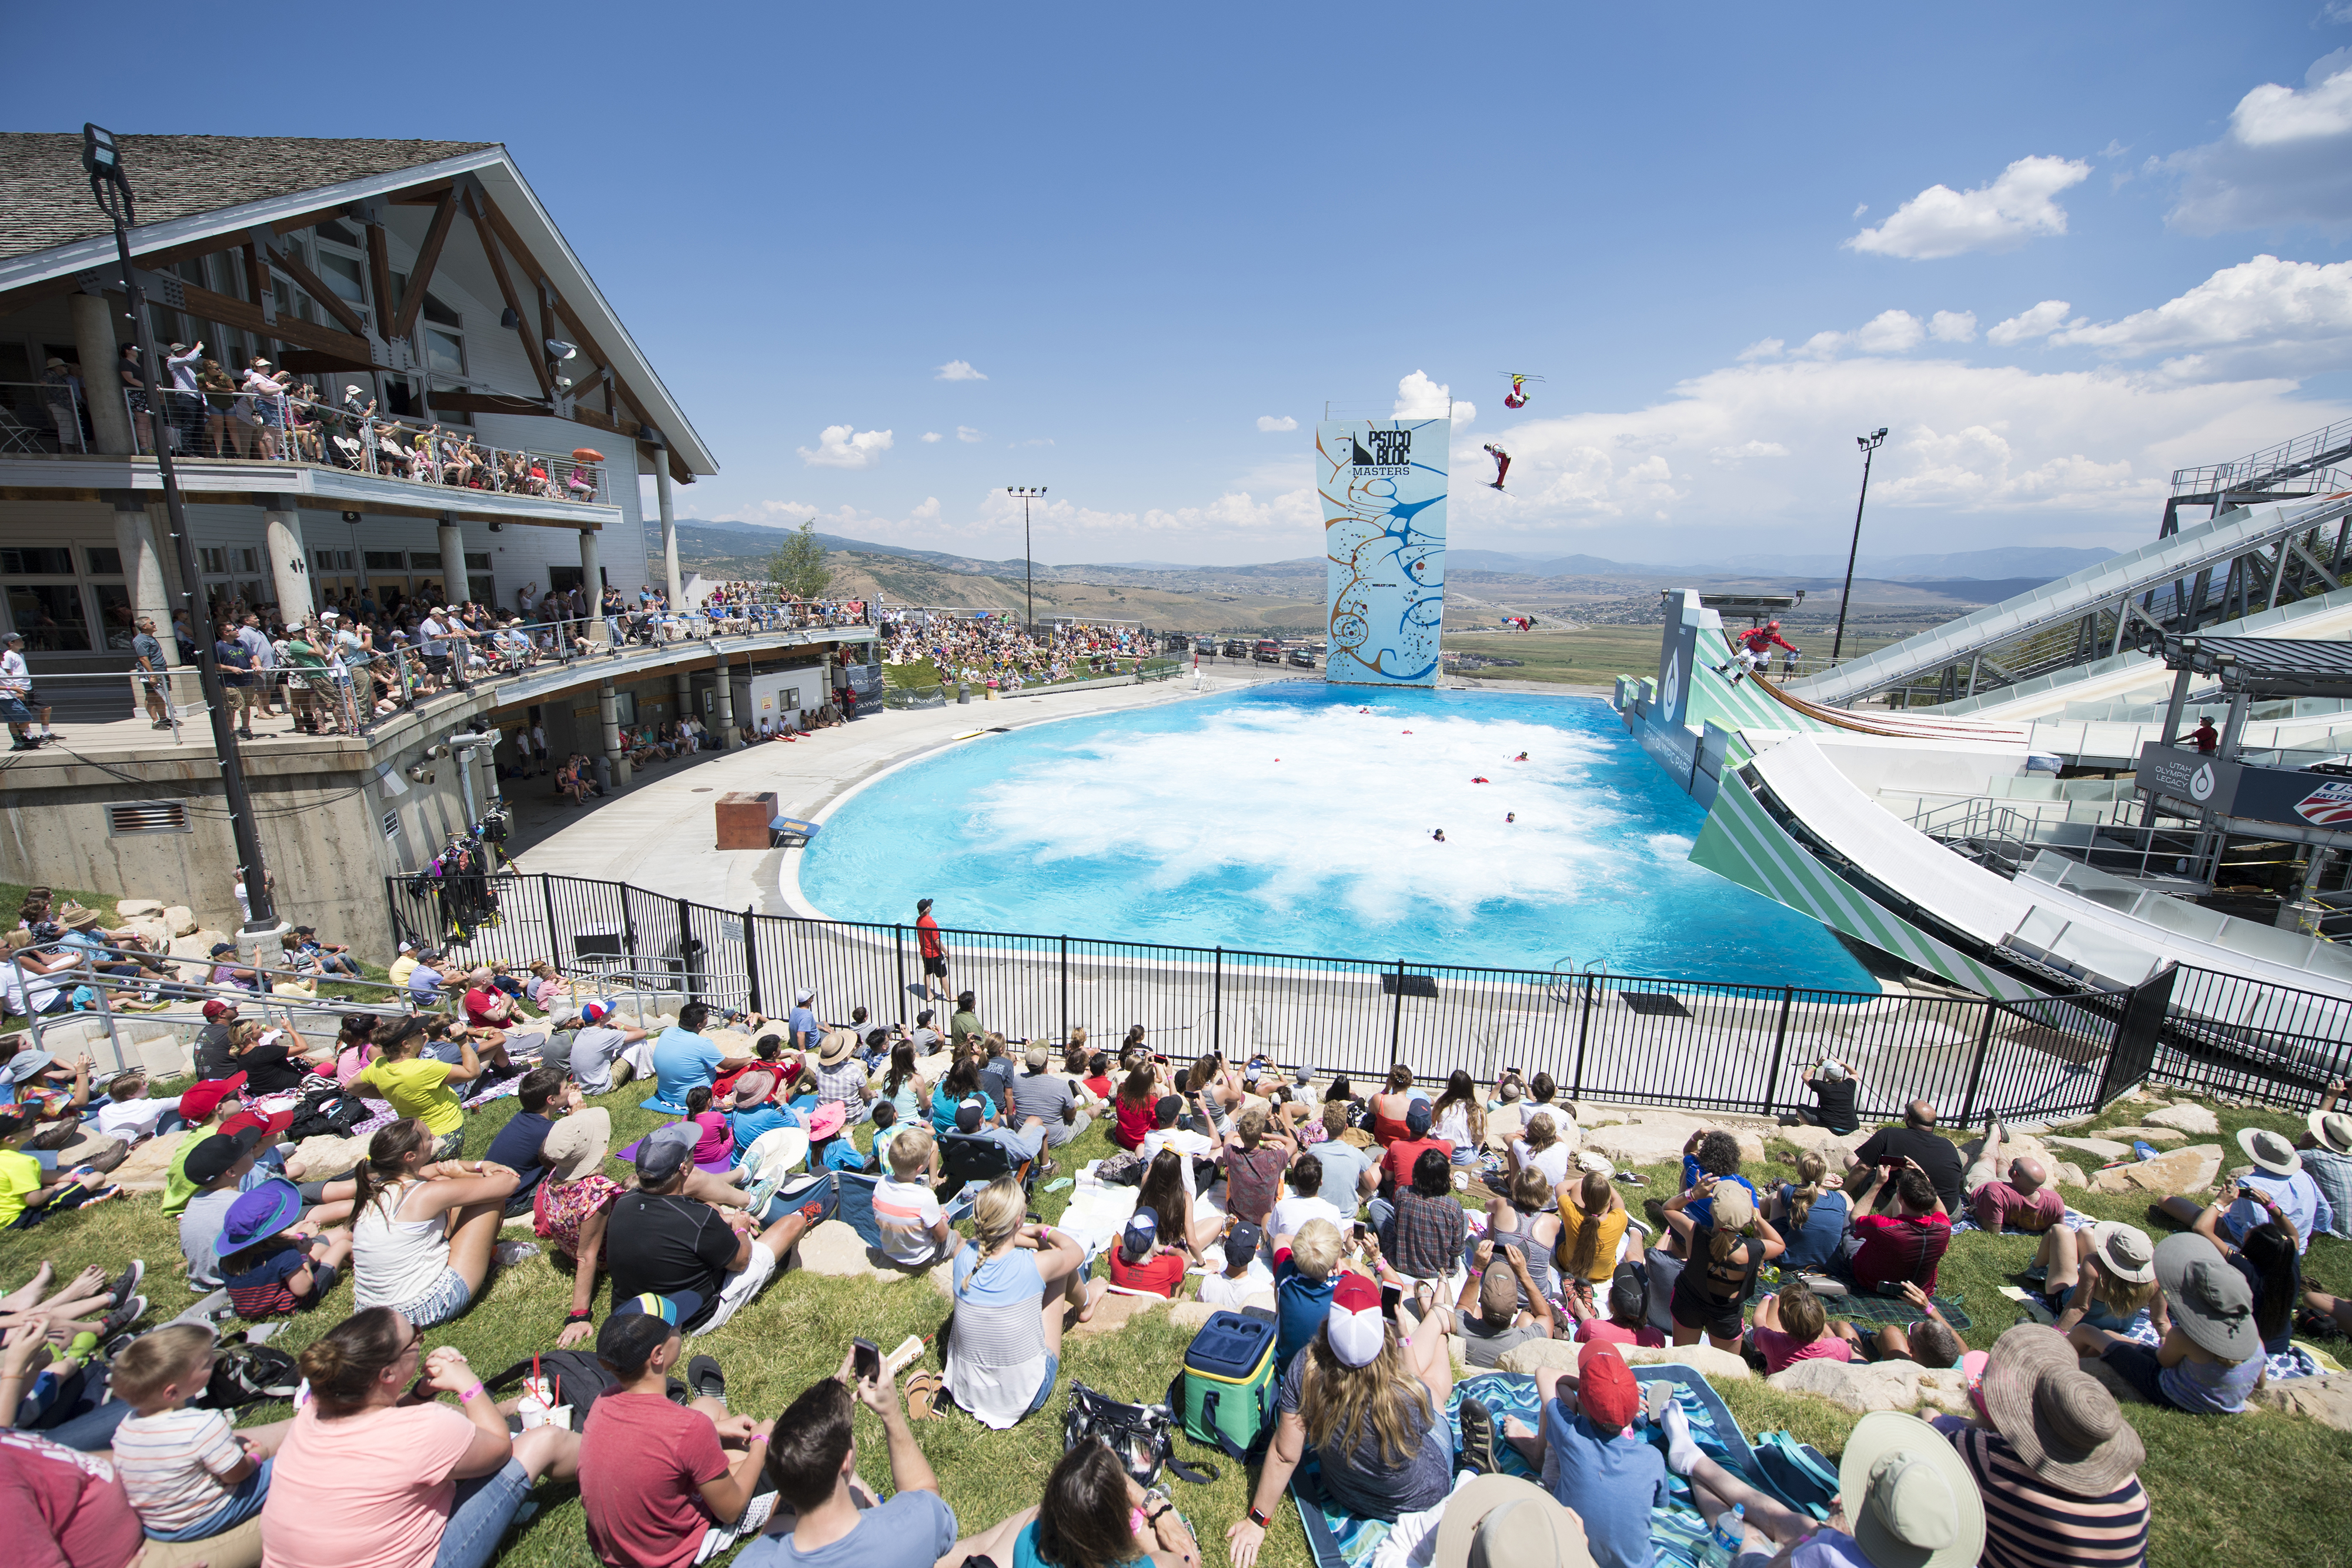 A Freestyle Aerial Show In The Summer At Utah Olympic Park Image Courtesy Of City Chamber Bureau